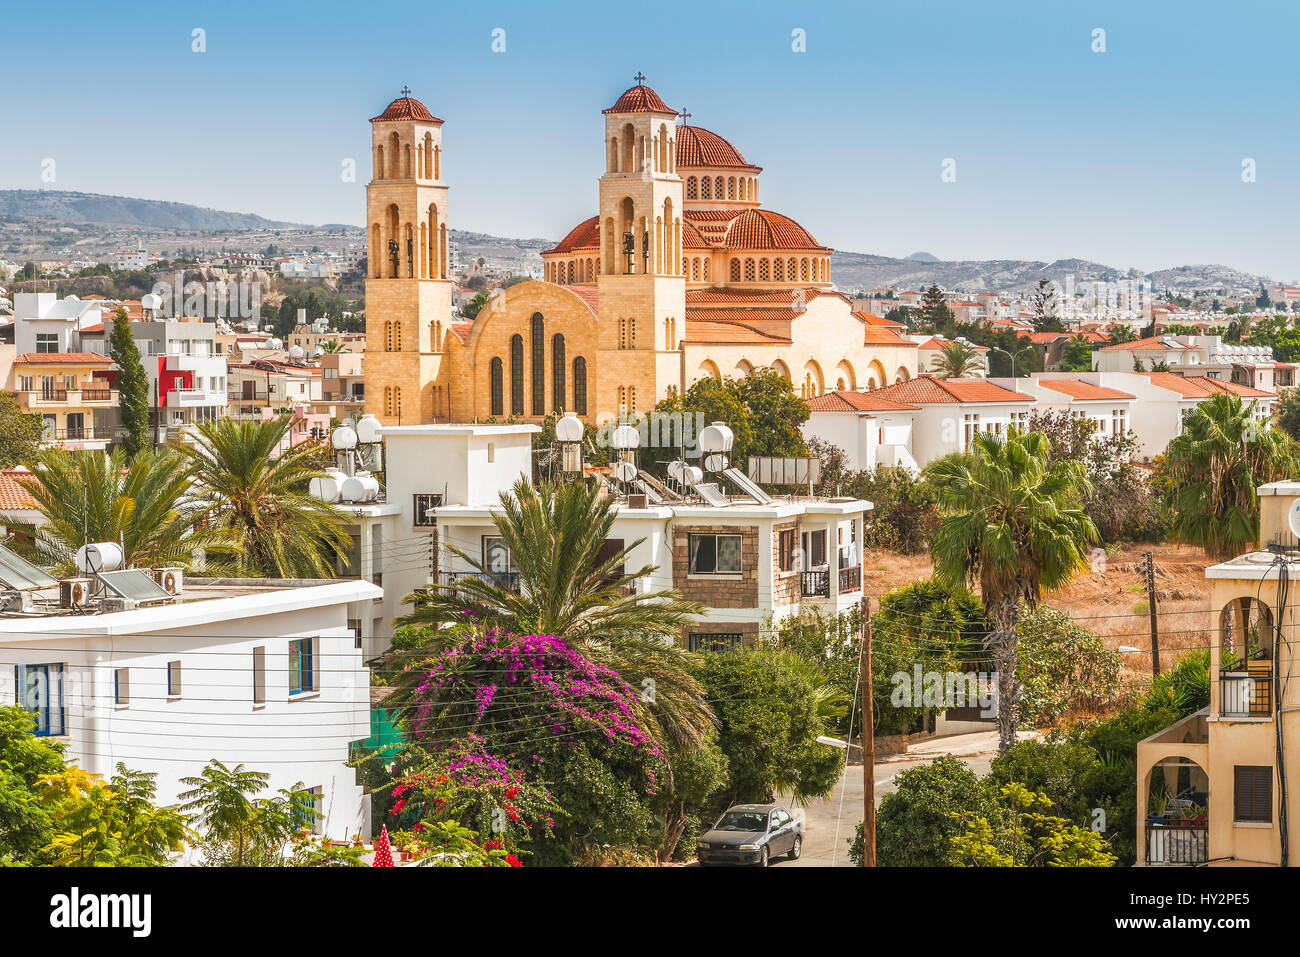 View of the town of Paphos in Cyprus. Paphos is known as the center of ancient history and culture of the island. Stock Photo